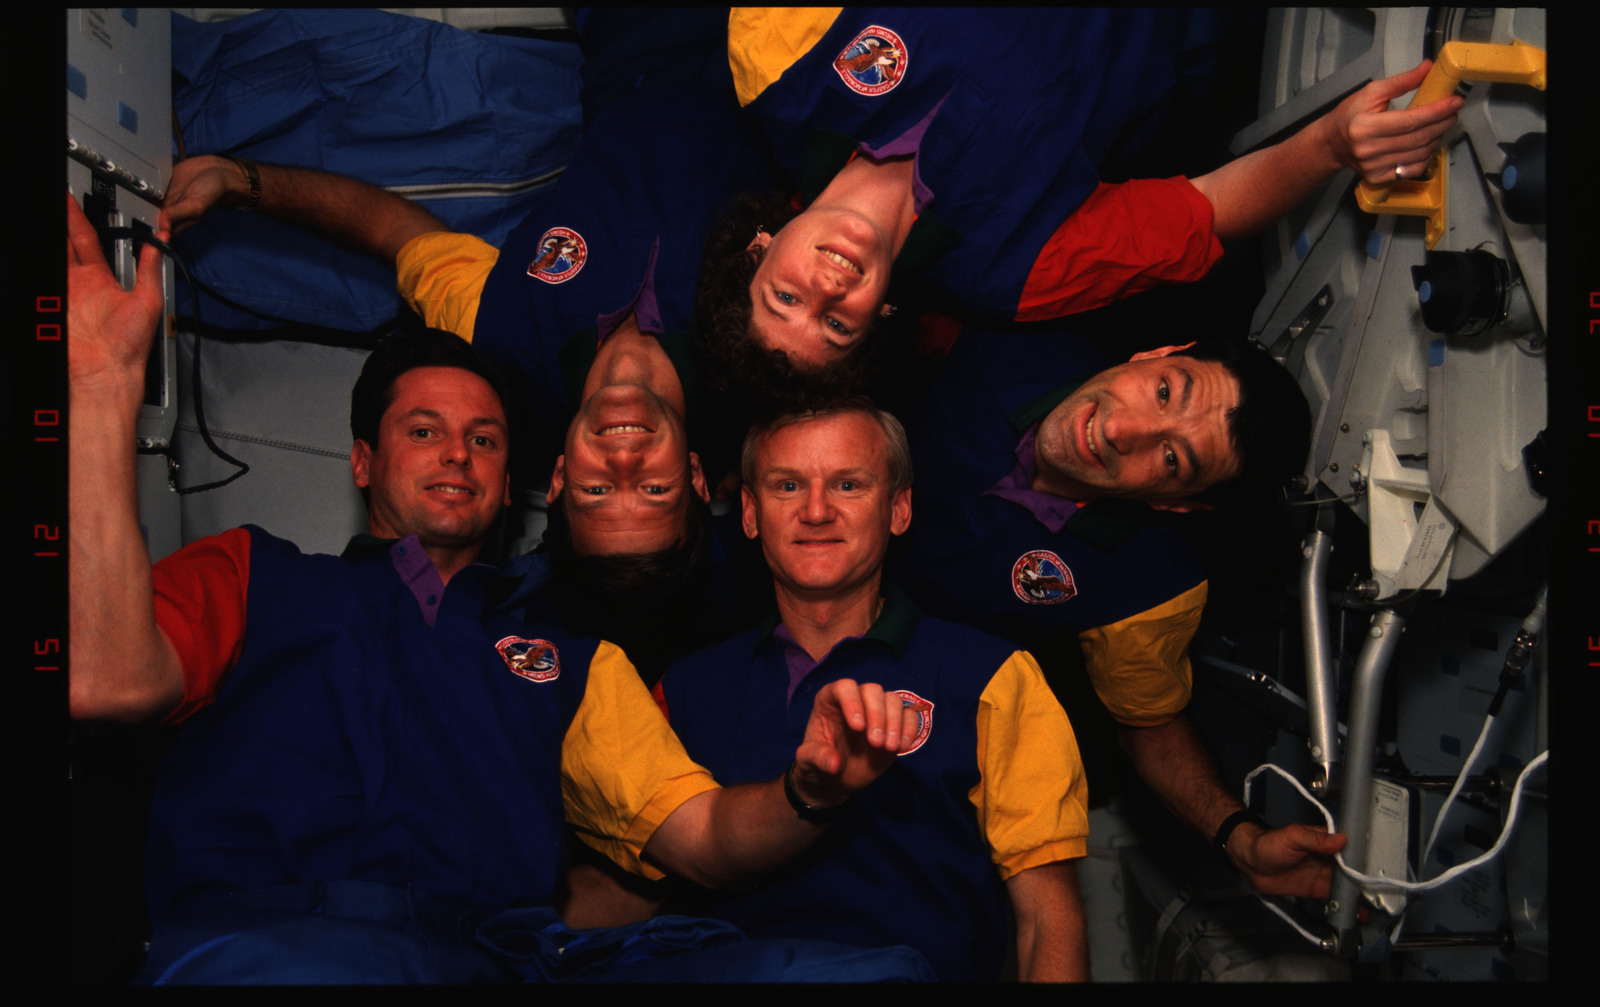 STS054-02-008 - STS-054 - In orbit crew group portraits.